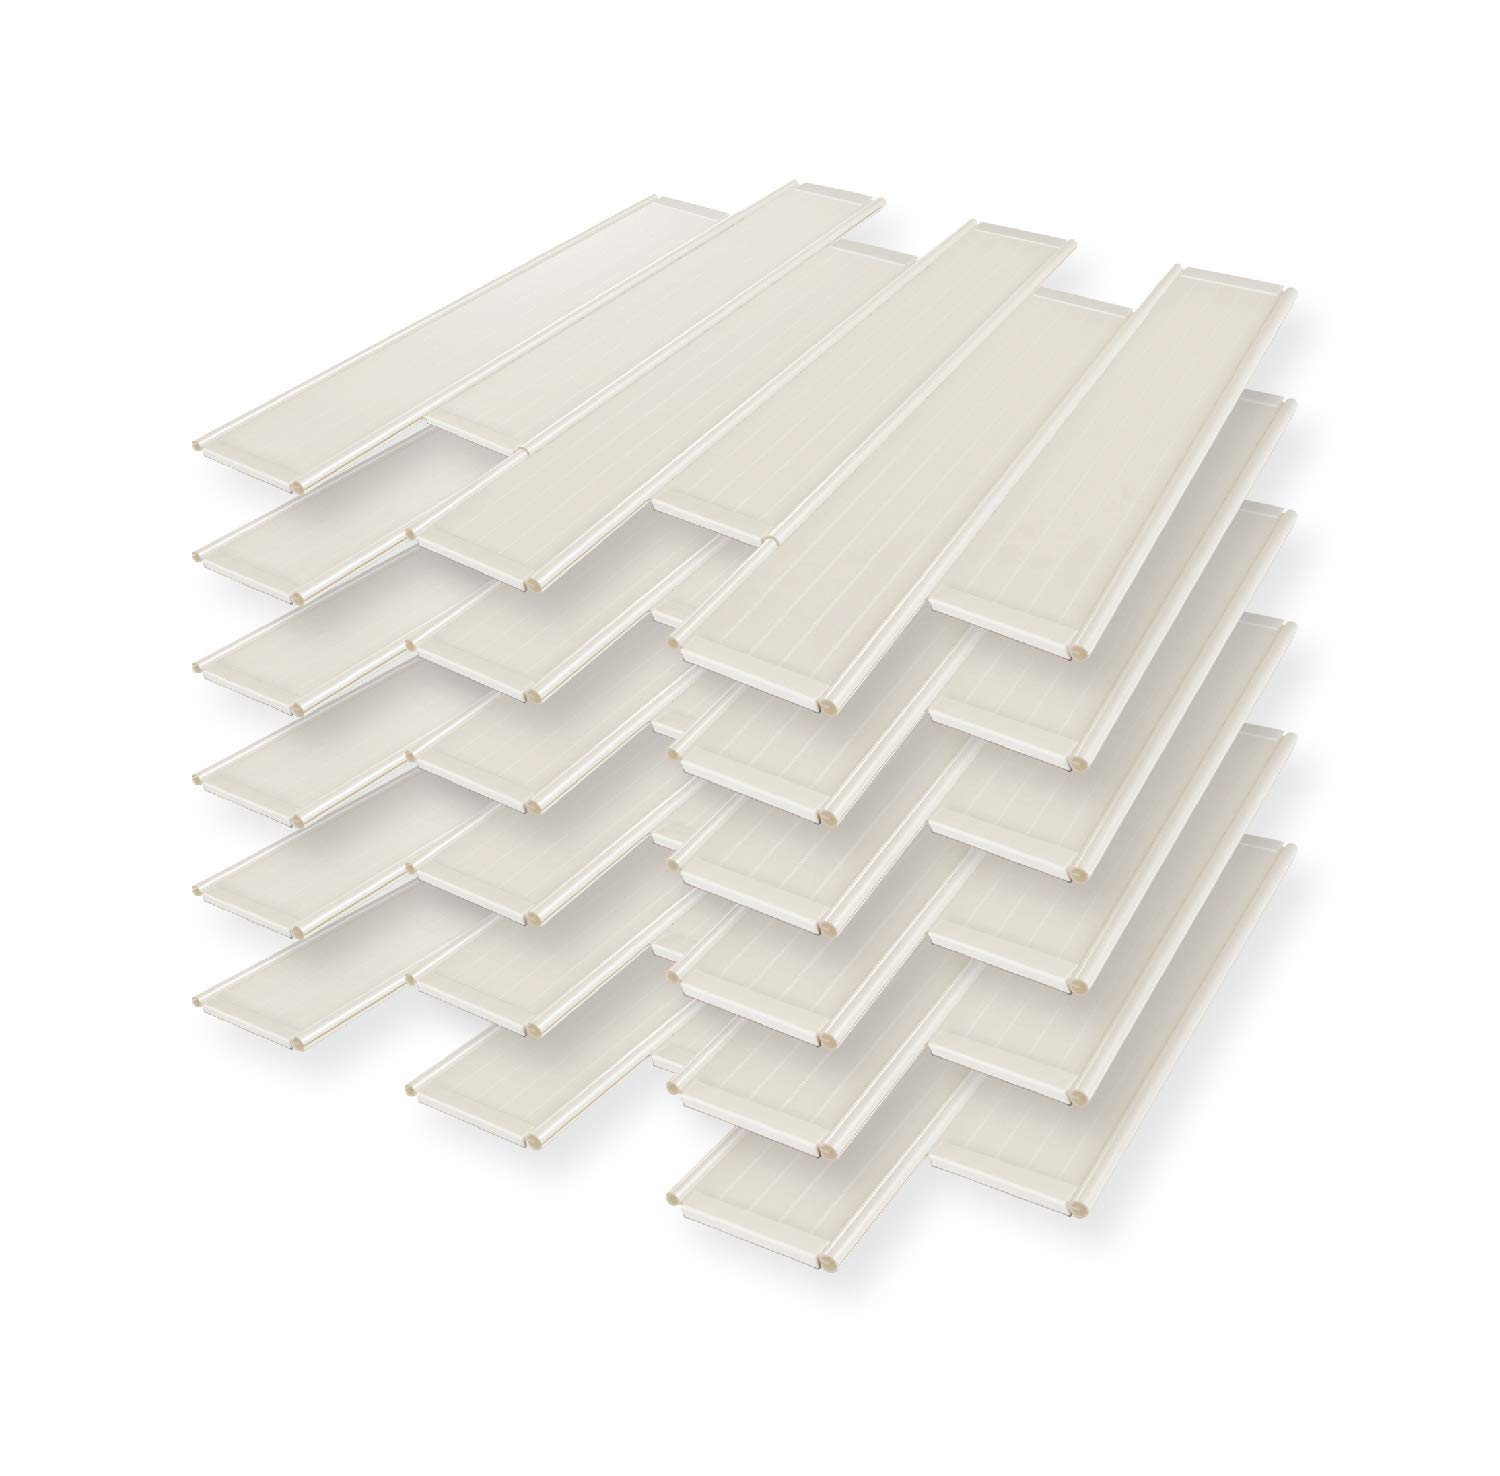 Furniture Fix Set of 36, Customizable and Interlocking Panels to Support and Lift Sagging Furniture and Upholstery by Furniture Fix